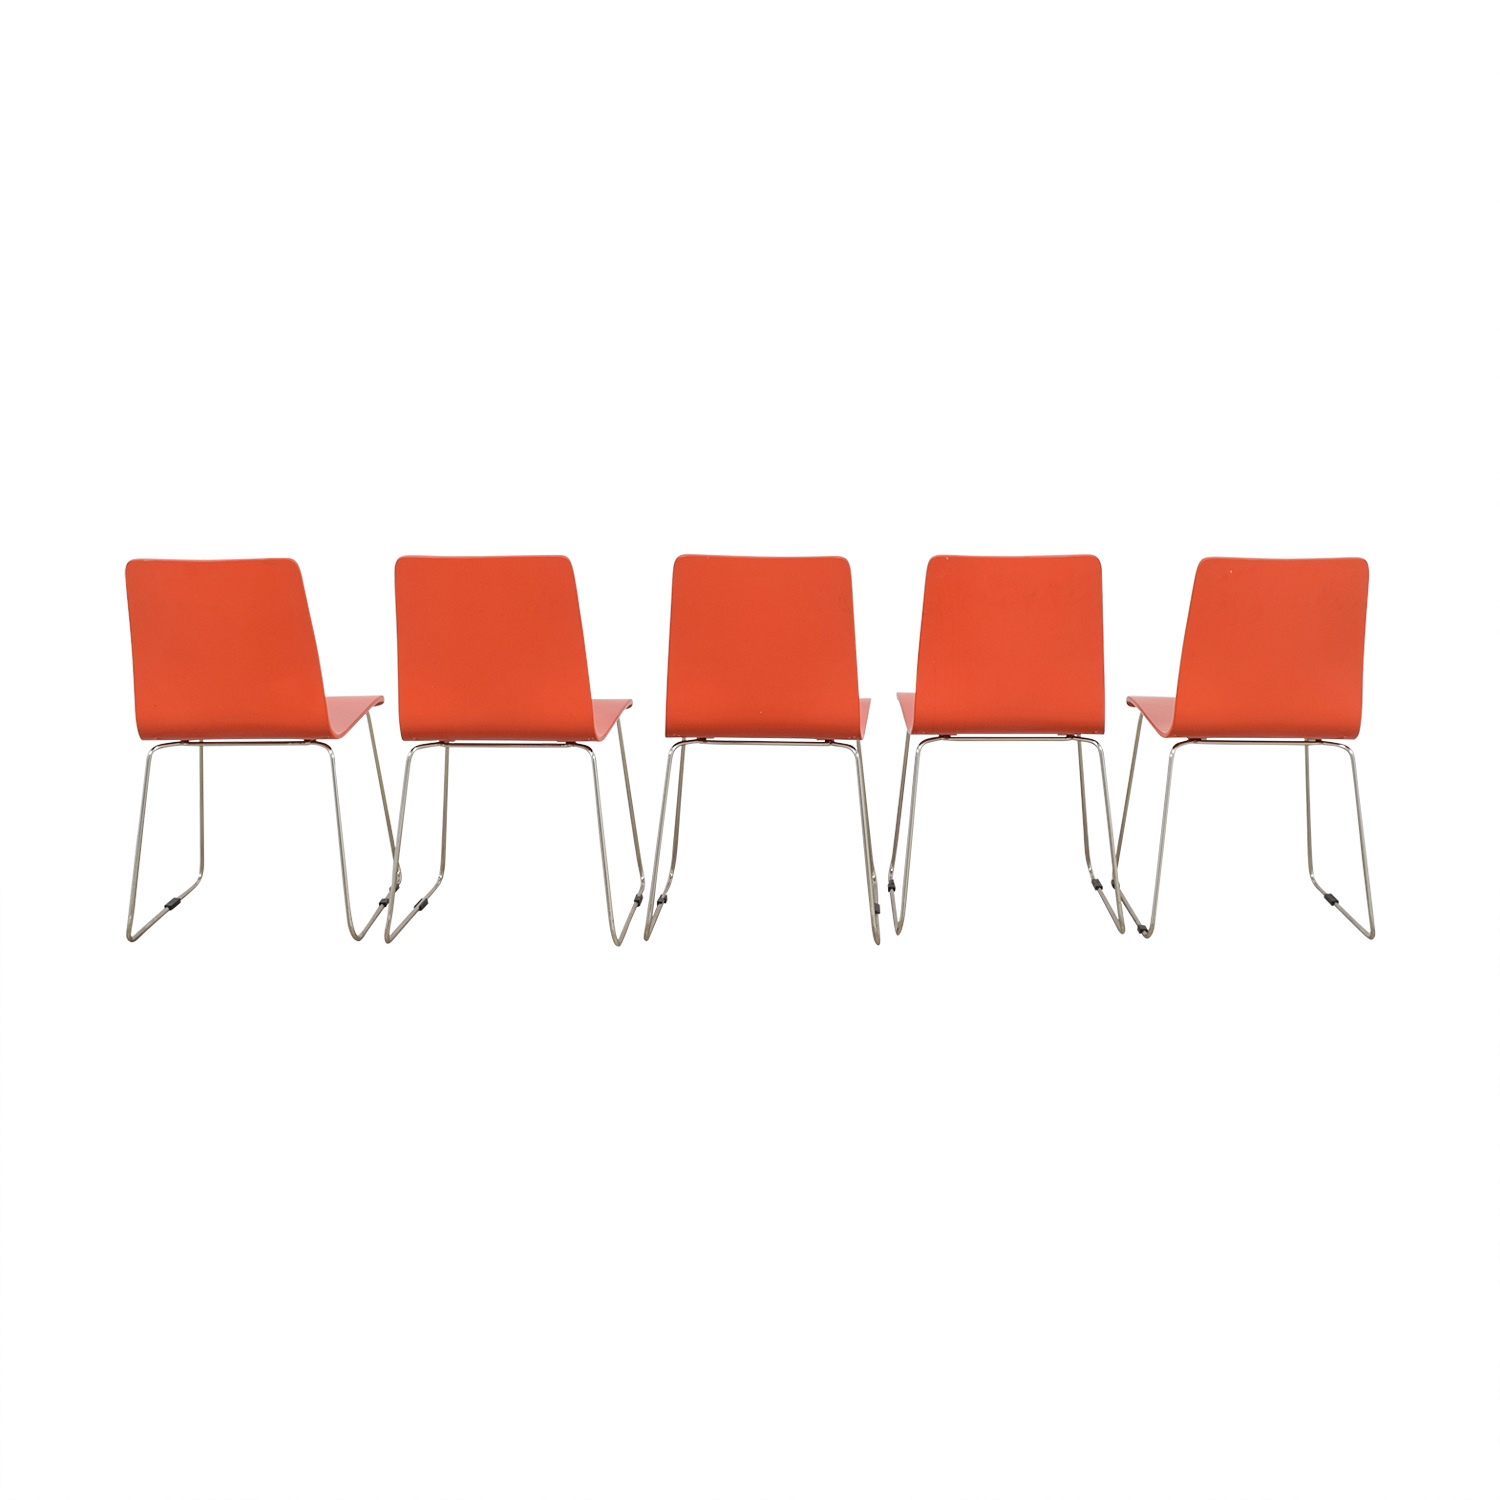 CB2 Echo Orange Dining Chairs / Dining Chairs